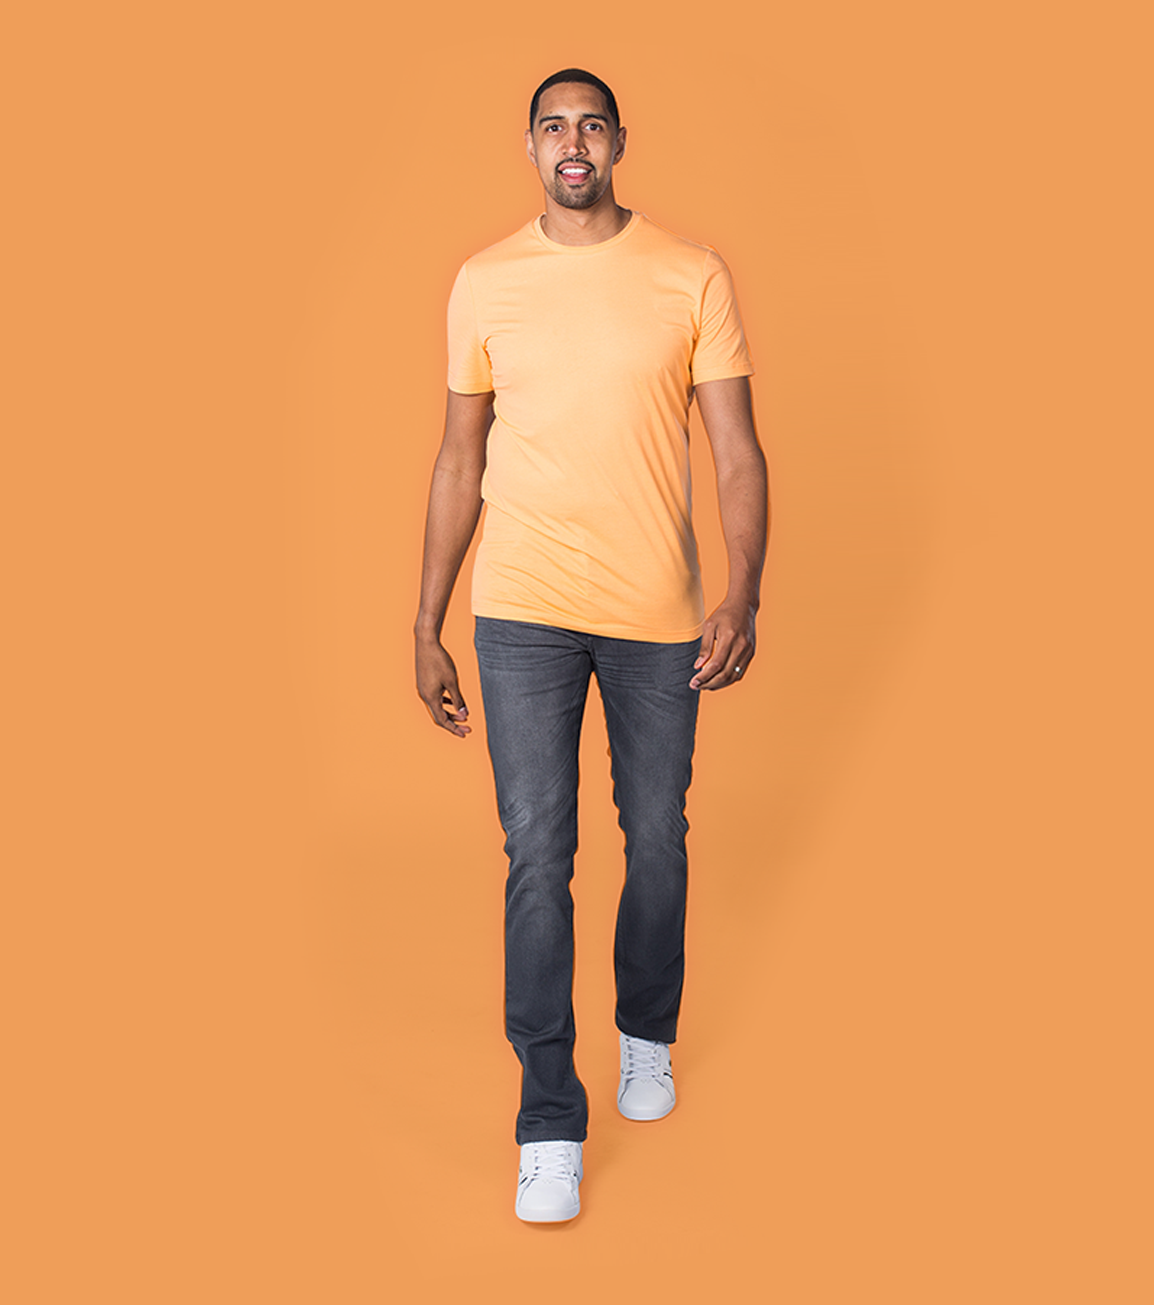 Tips for Clothing Care for Tall Men